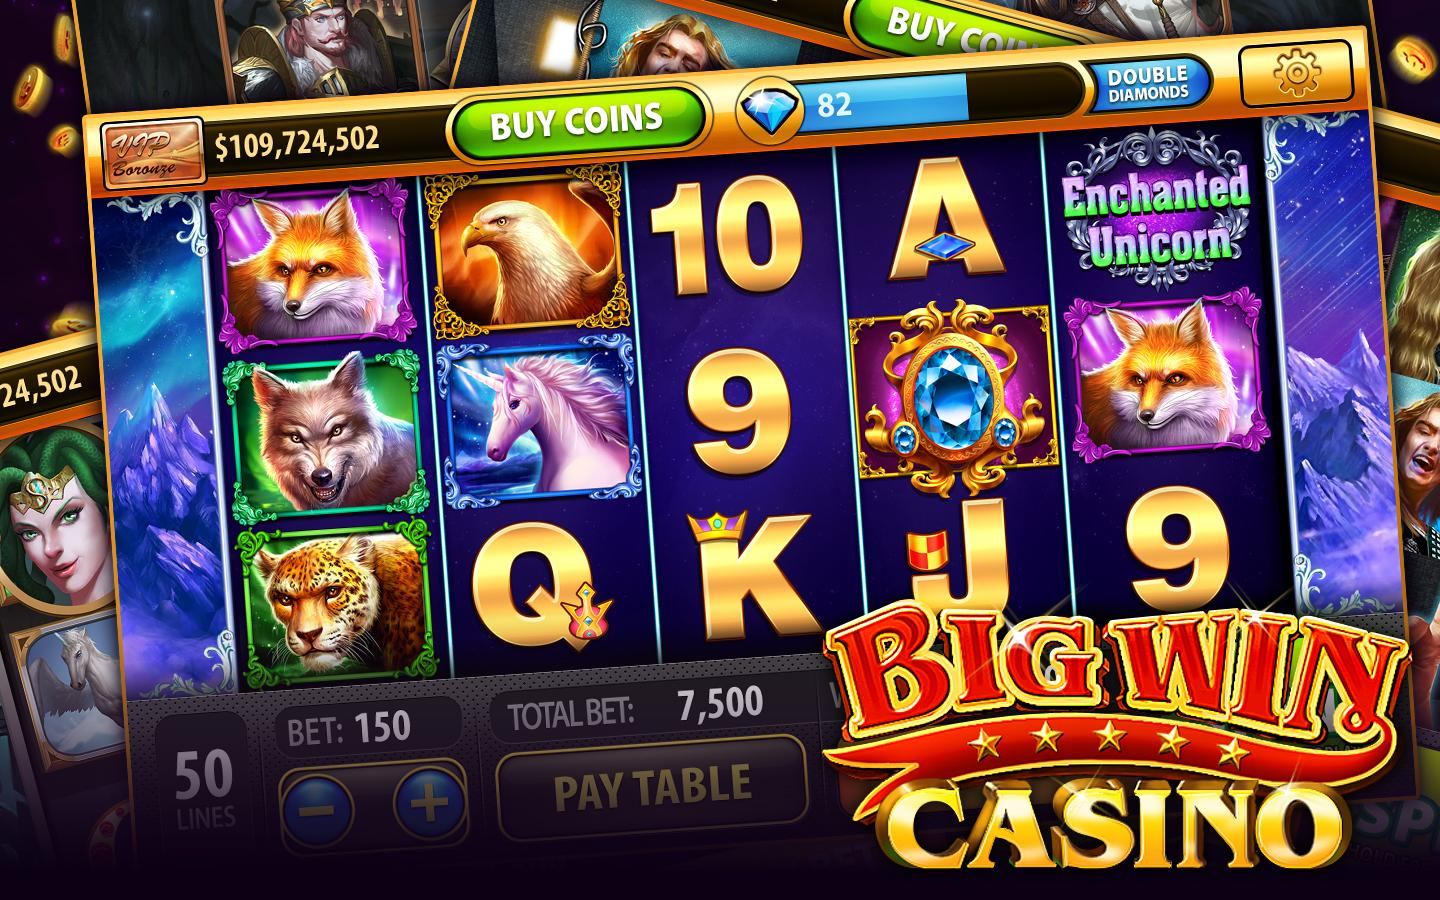 American Star Slot Machine - Play for Free Online Today